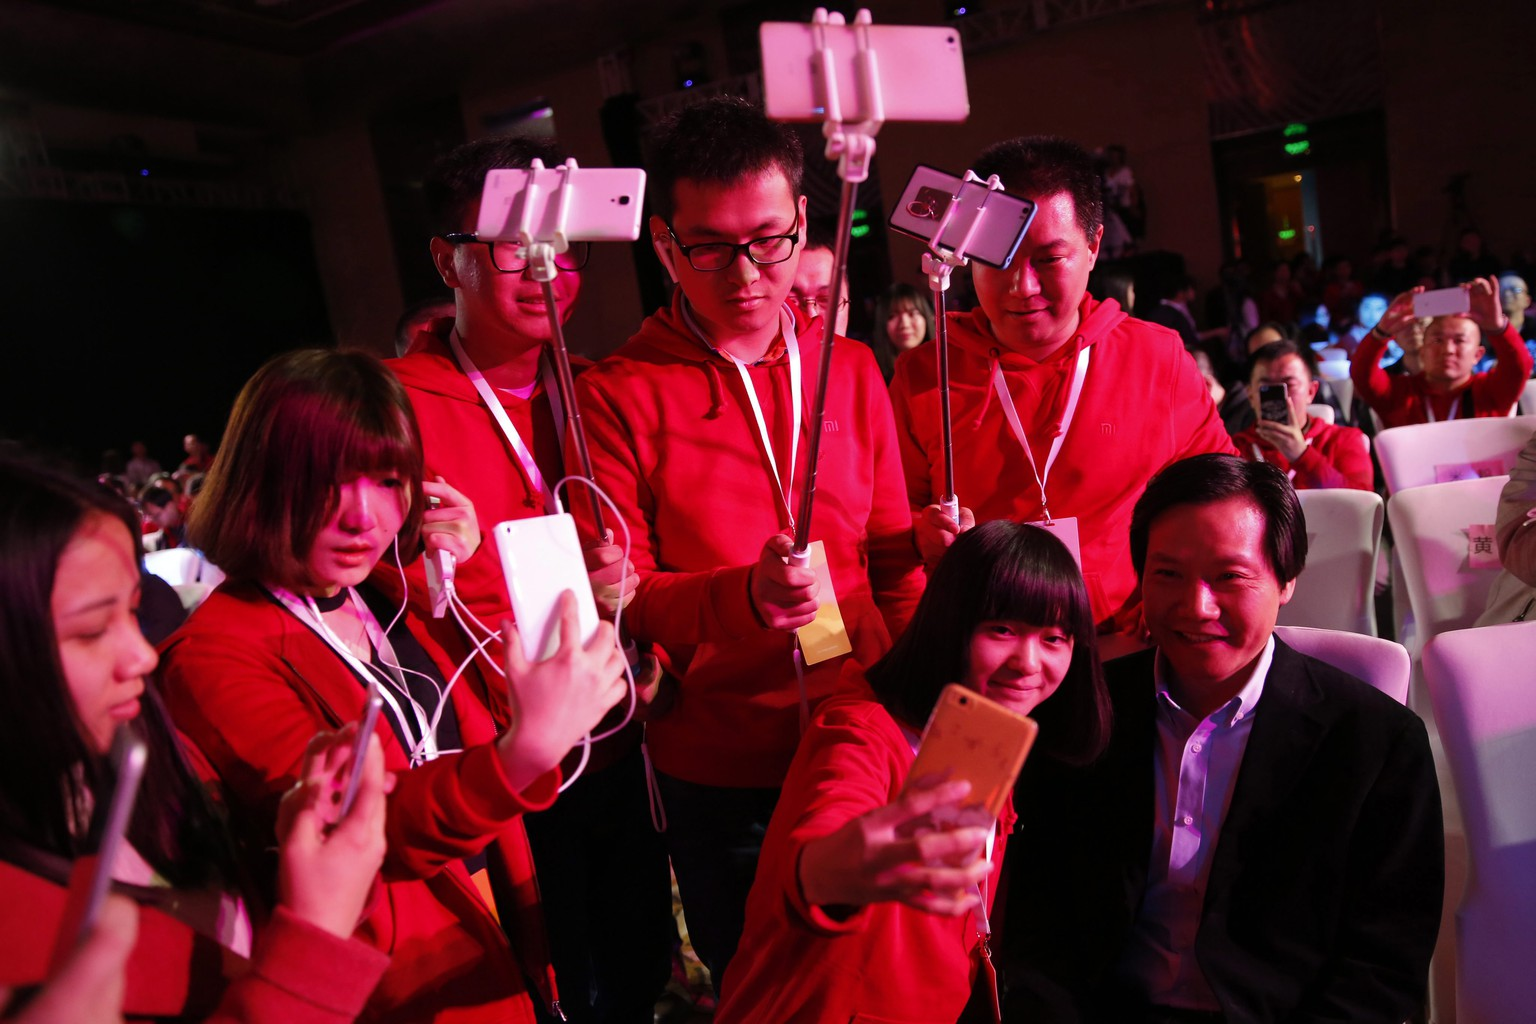 epa05226844 Fans of Xiaomi, pose and take photos with Lei Jun (R) , CEO of Chinese mobile internet company Xiaomi Technology Co. Ltd., before the Xiaomi product launch ceremony for the new Xiaomi 'Mi TV 3S' product  in Beijing City, China, 23 March 2016.  EPA/WU HONG